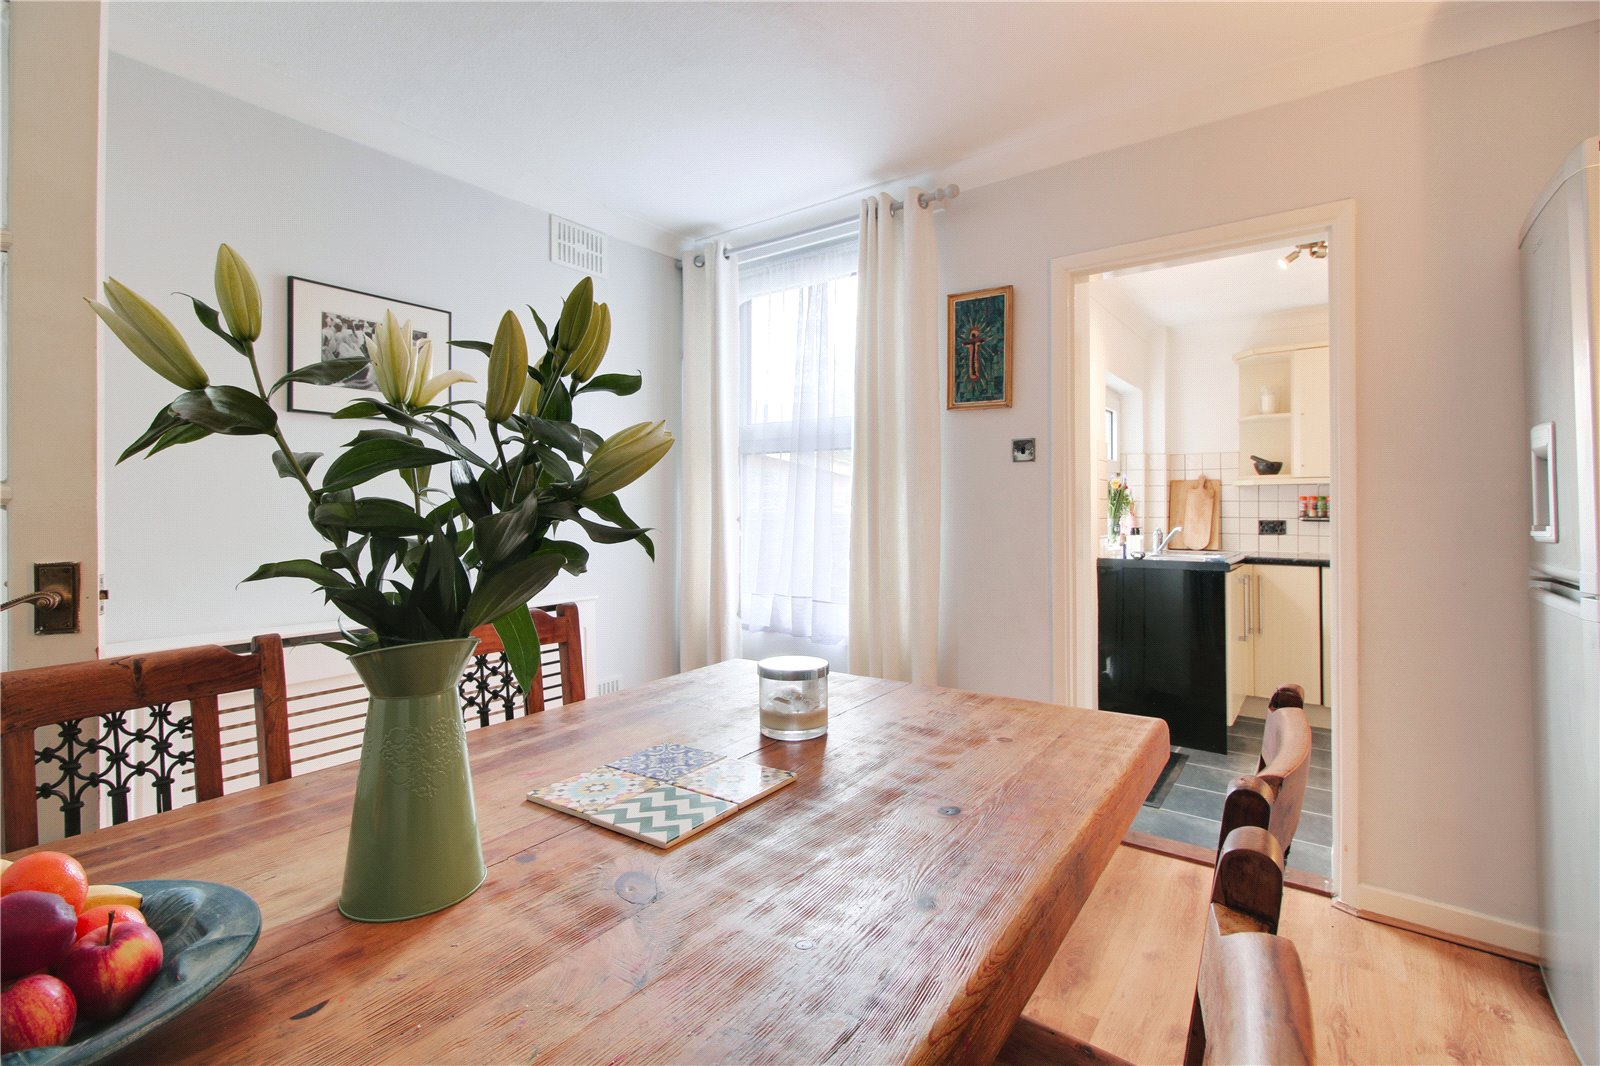 2 bed house for sale in Well Road, Maidstone, ME14